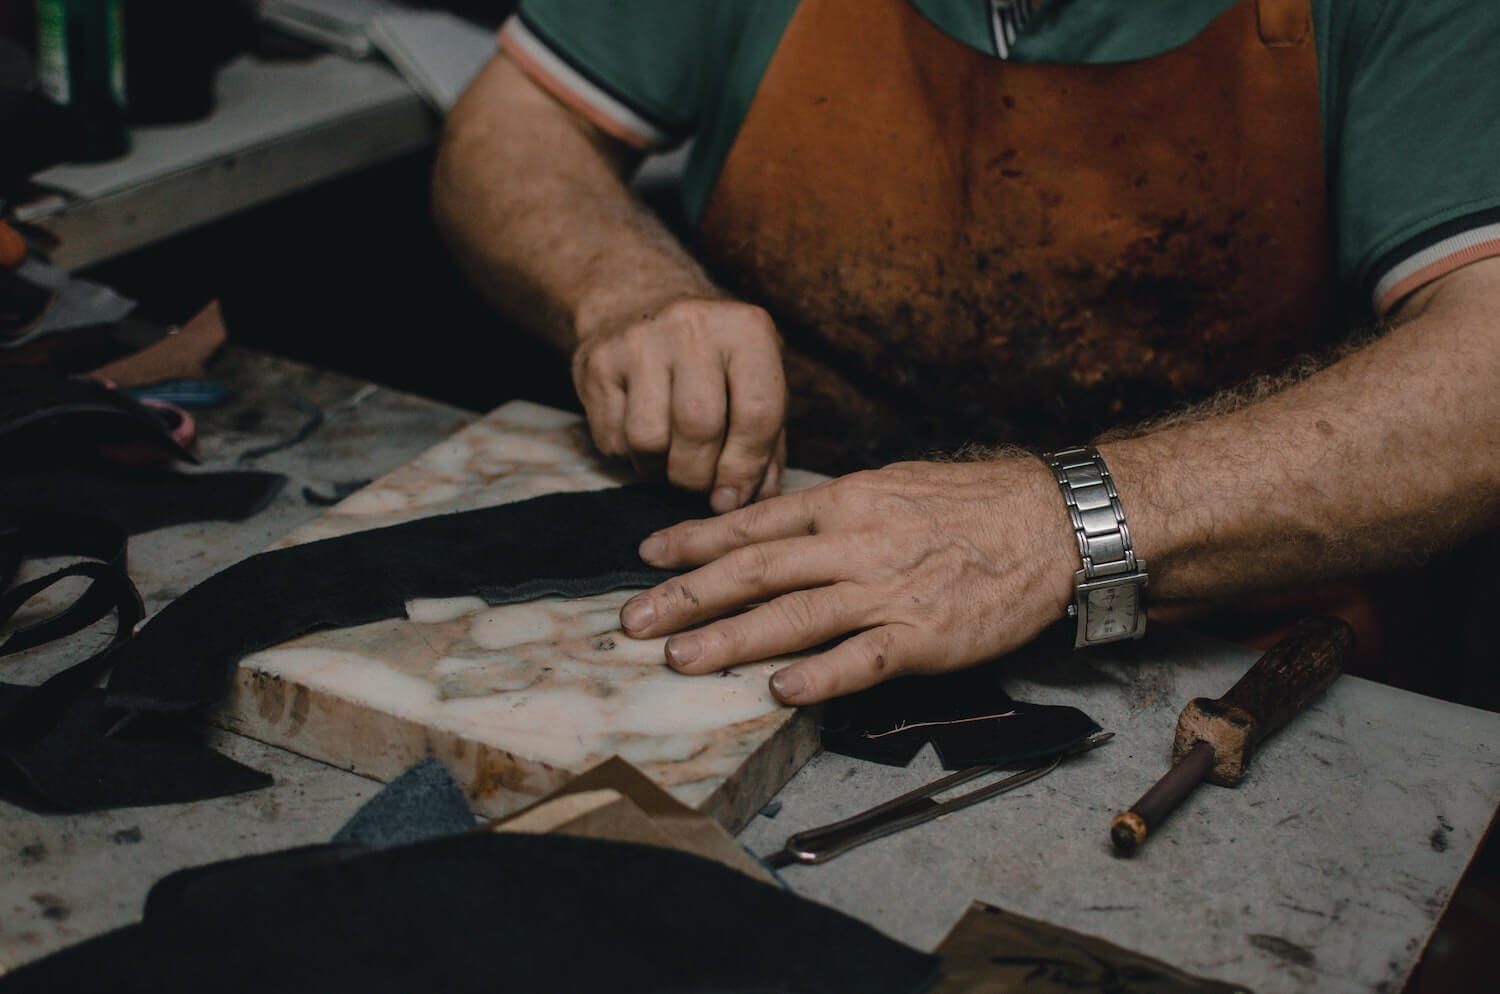 Shoemaker Cutting Out the Sole of a Shoe